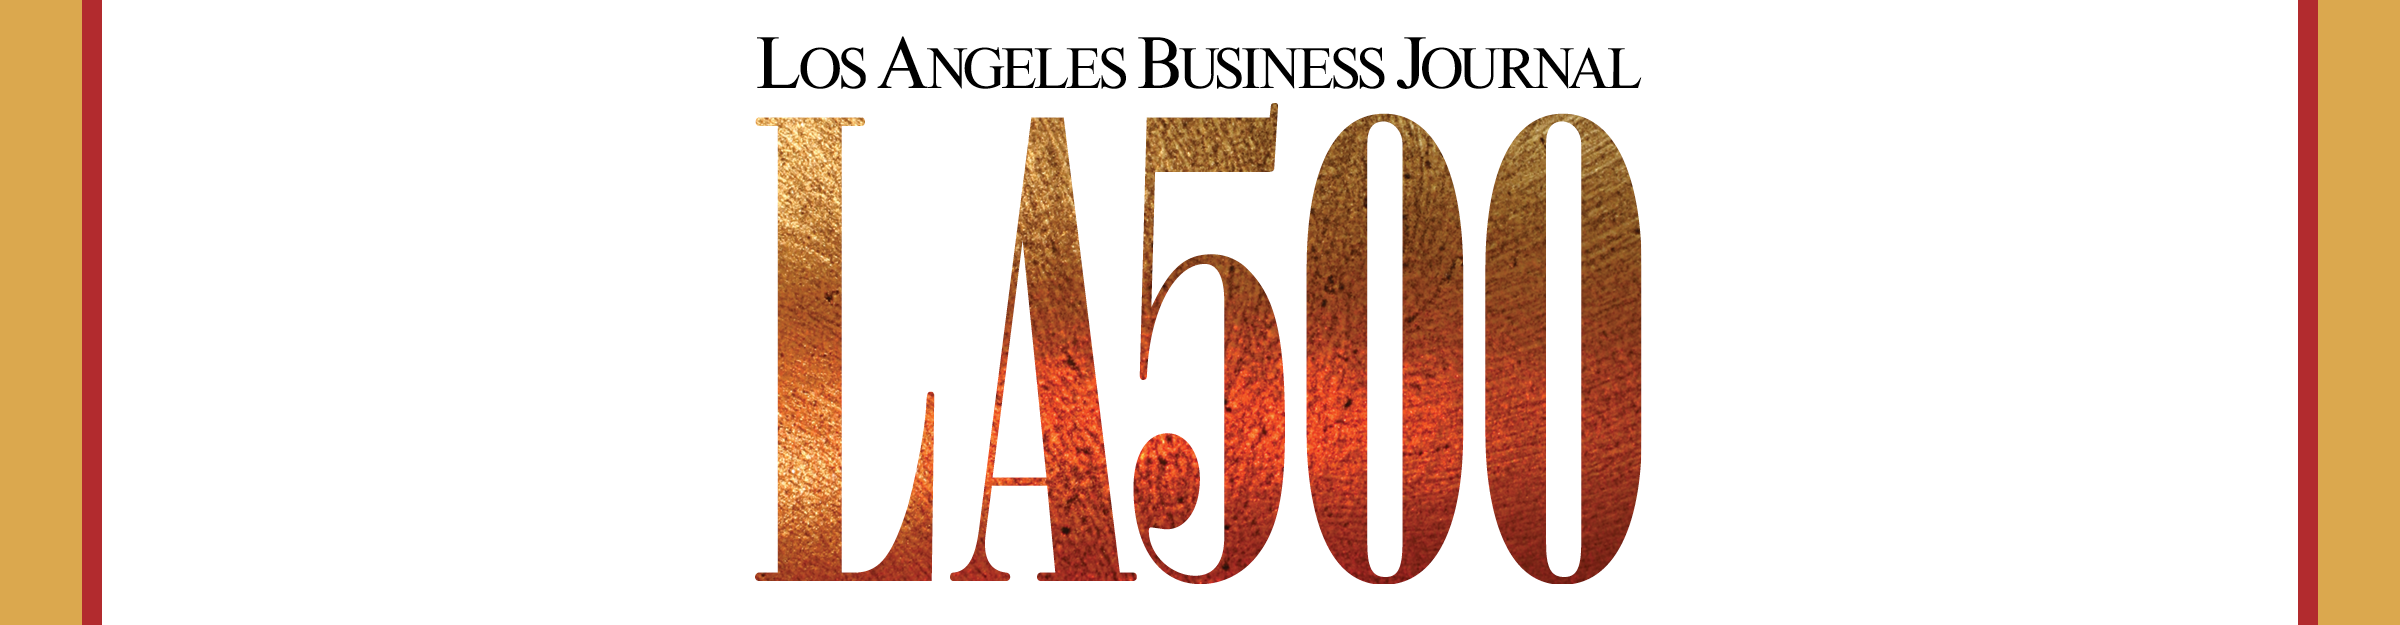 Los Angeles Business Journal LA500 Event Banner